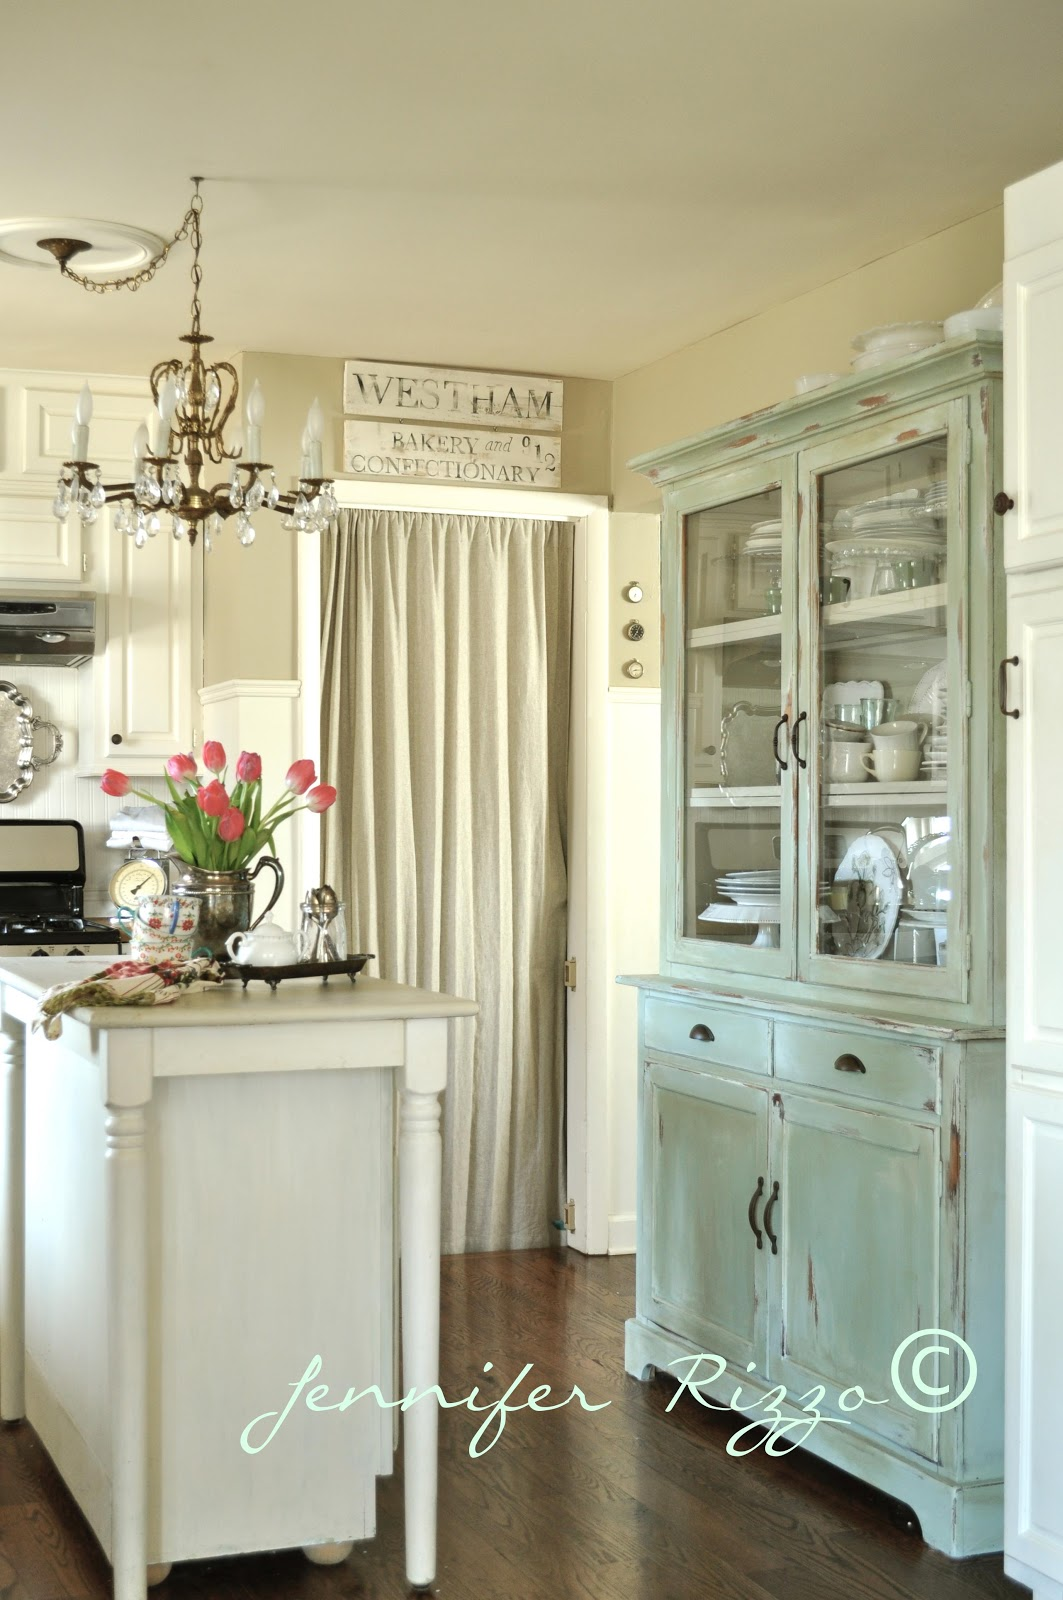 May days 10 repurpose ideas for a china cabinet for Chinese kitchen cabinets